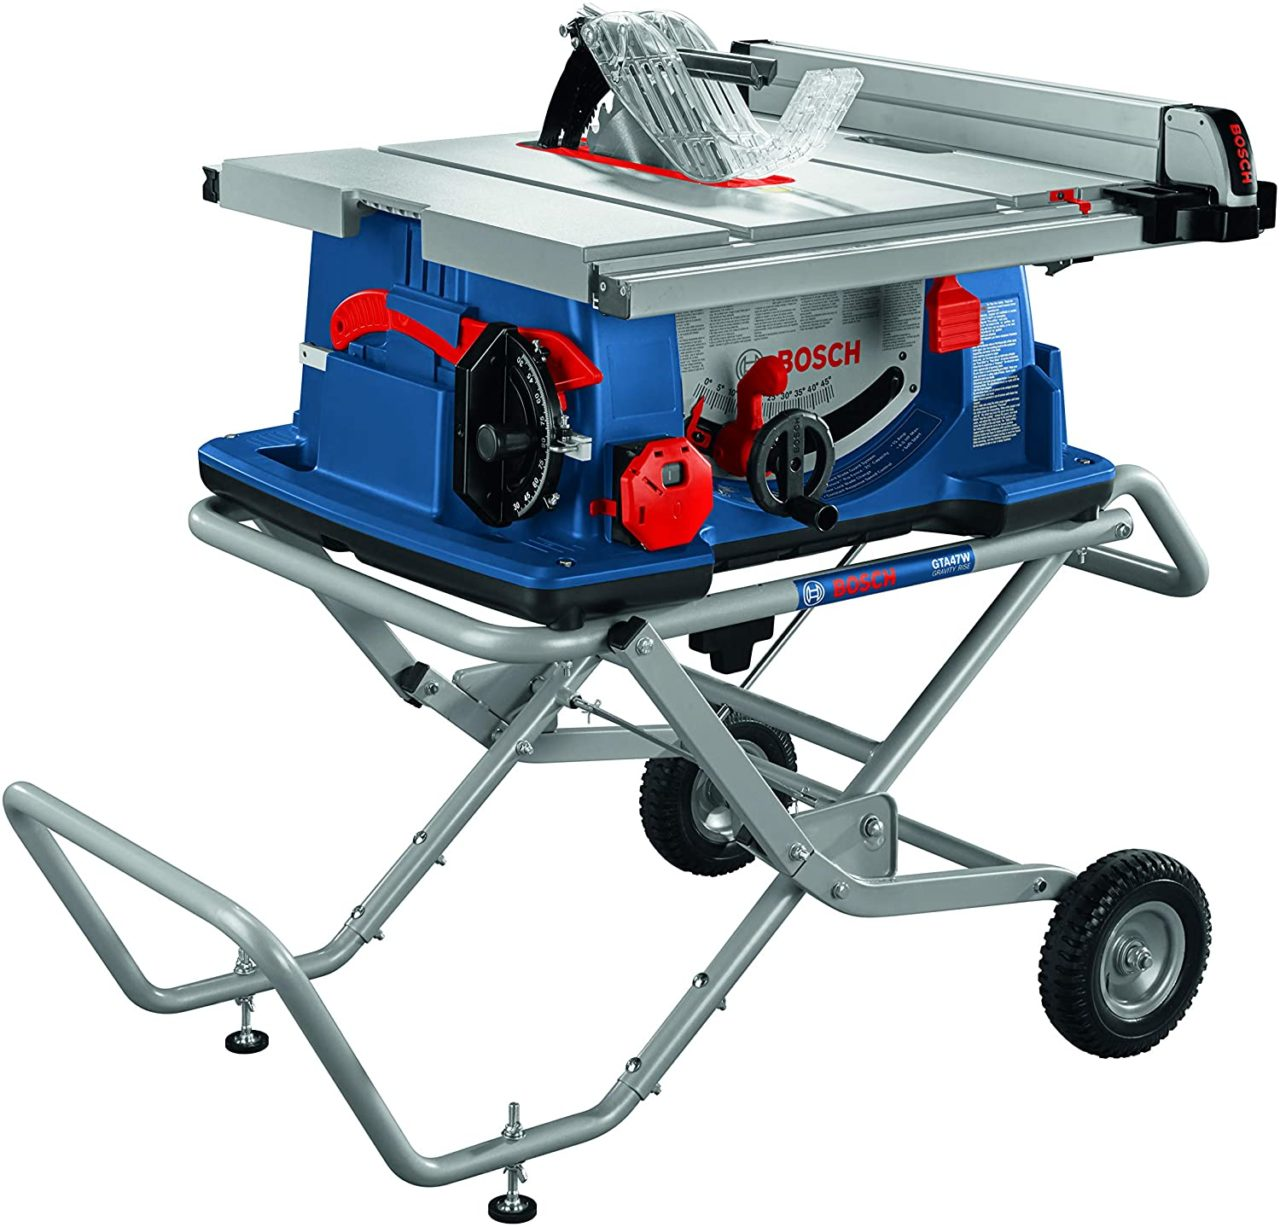 Bosch 4100XC-10 - best contractor table saw for the money